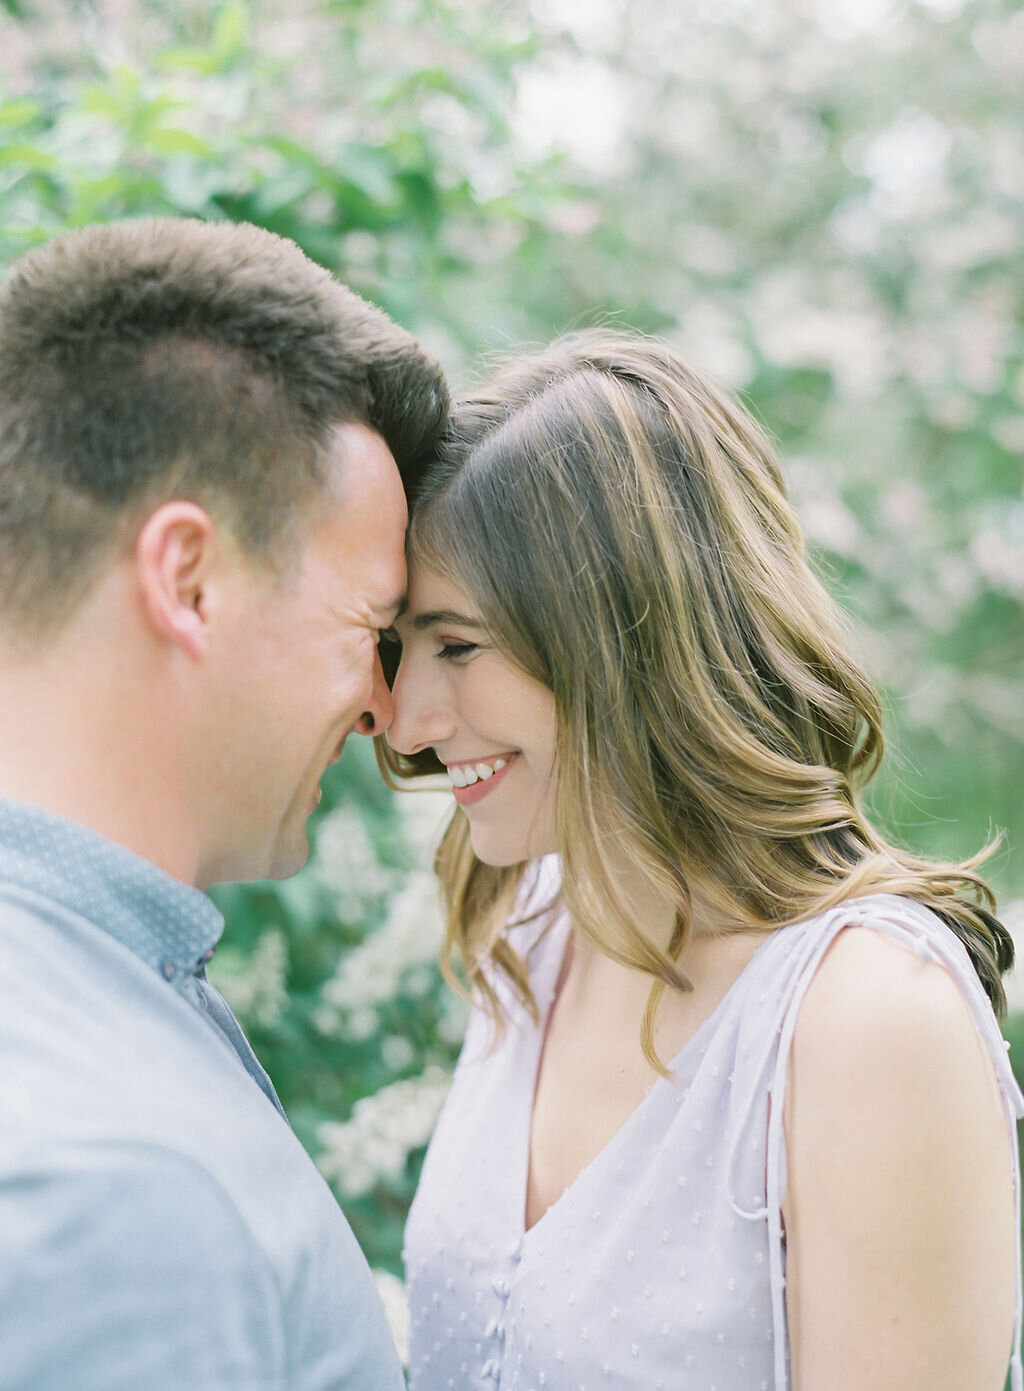 Cylburn Arboretum and Tribeca Engagement Photography Session by Vicki Grafton on East Made Co Baltimore Wedding Planner Blog-59.jpg